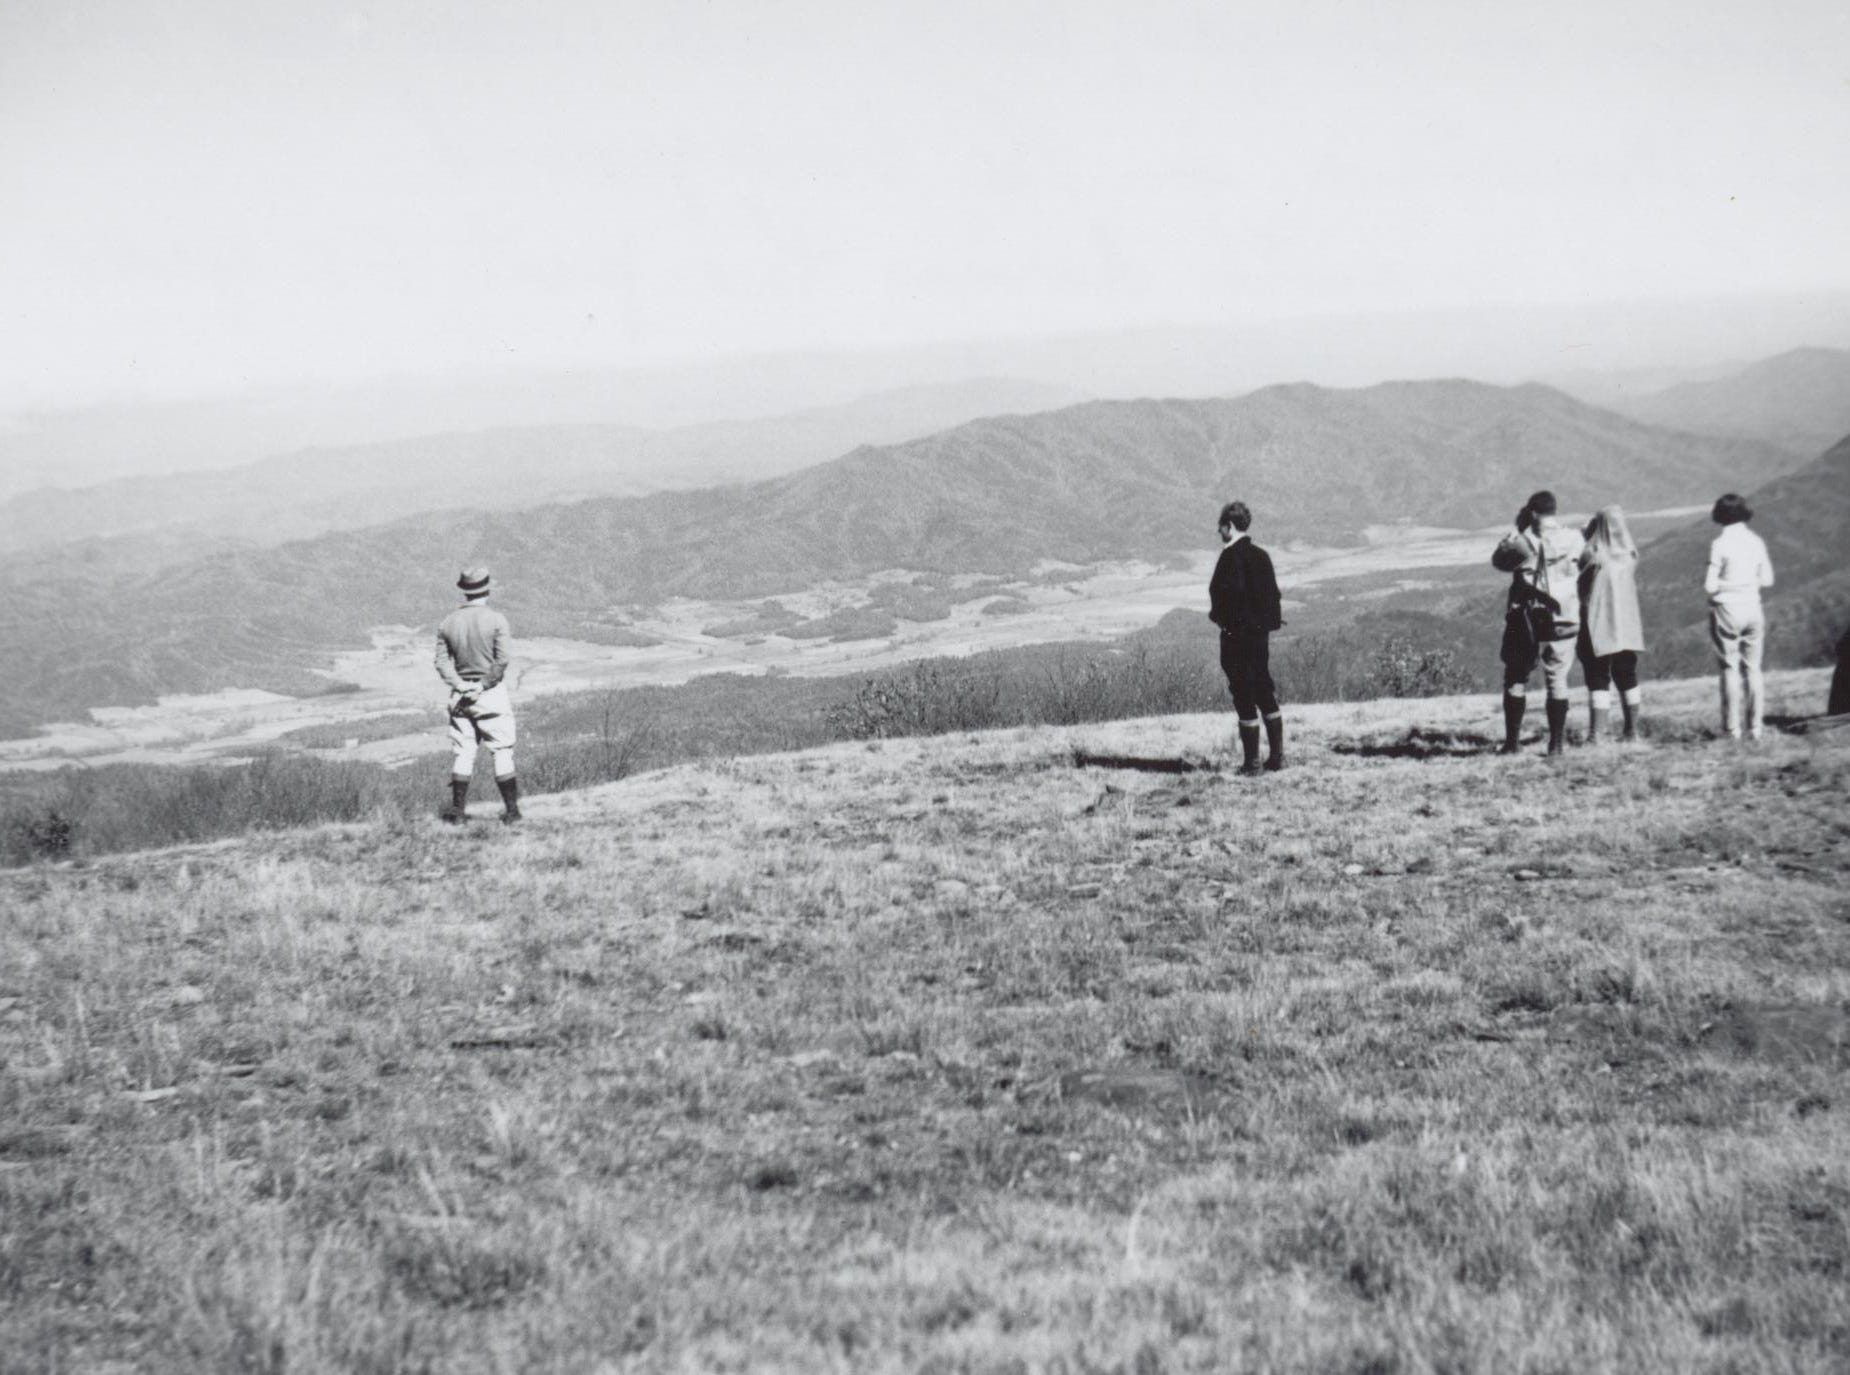 View from Gregory Bald into Cades Cove ca. 1934, in Great Smoky Mountains National Park.